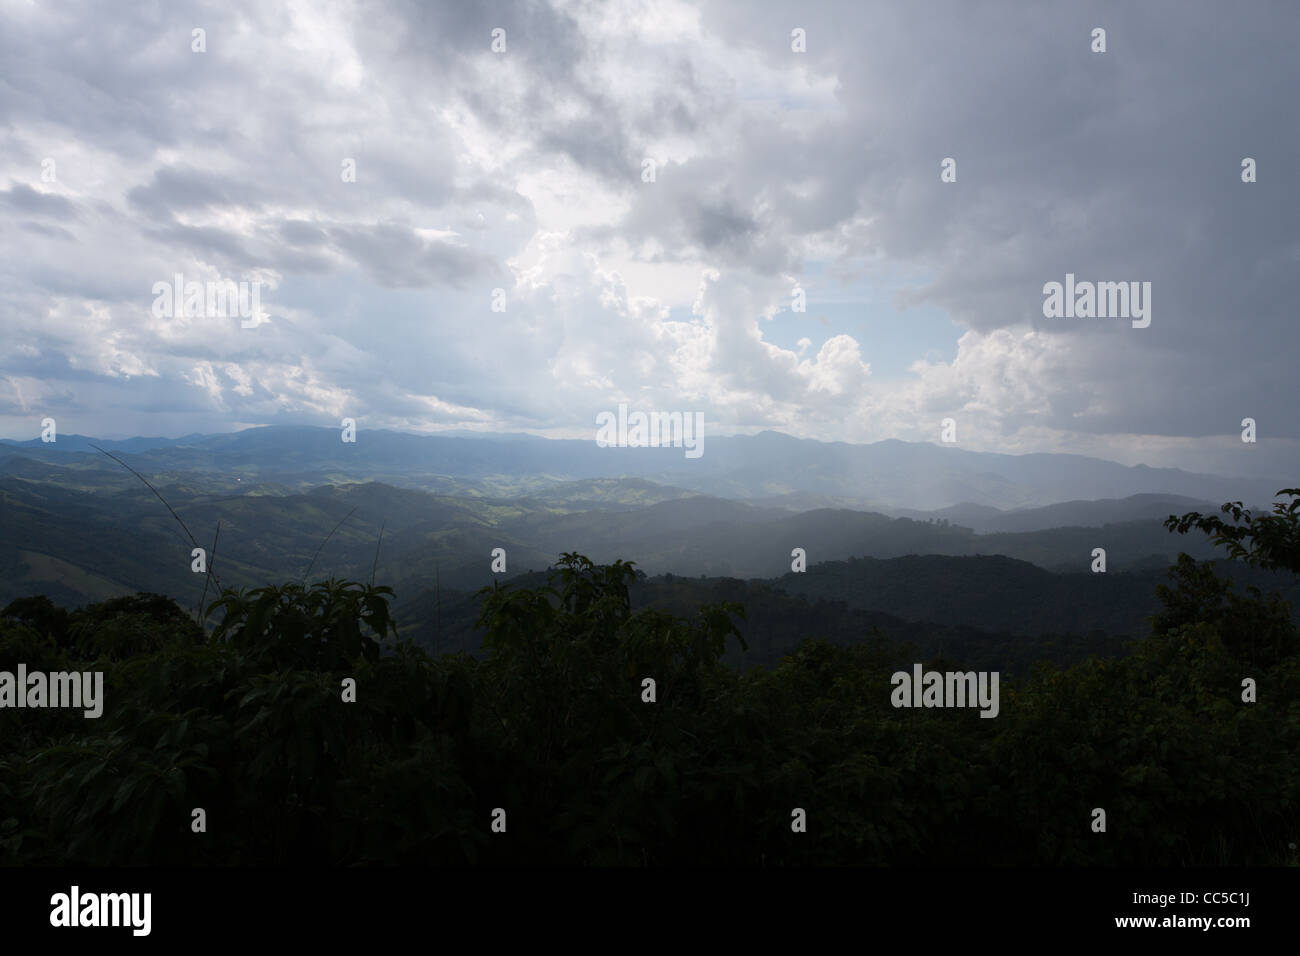 Serra da Mantiqueira (Mantiqueira Mountains), cloudy afternoon, viewed from Vista Chinesa, Campos do Jordao, State Stock Photo